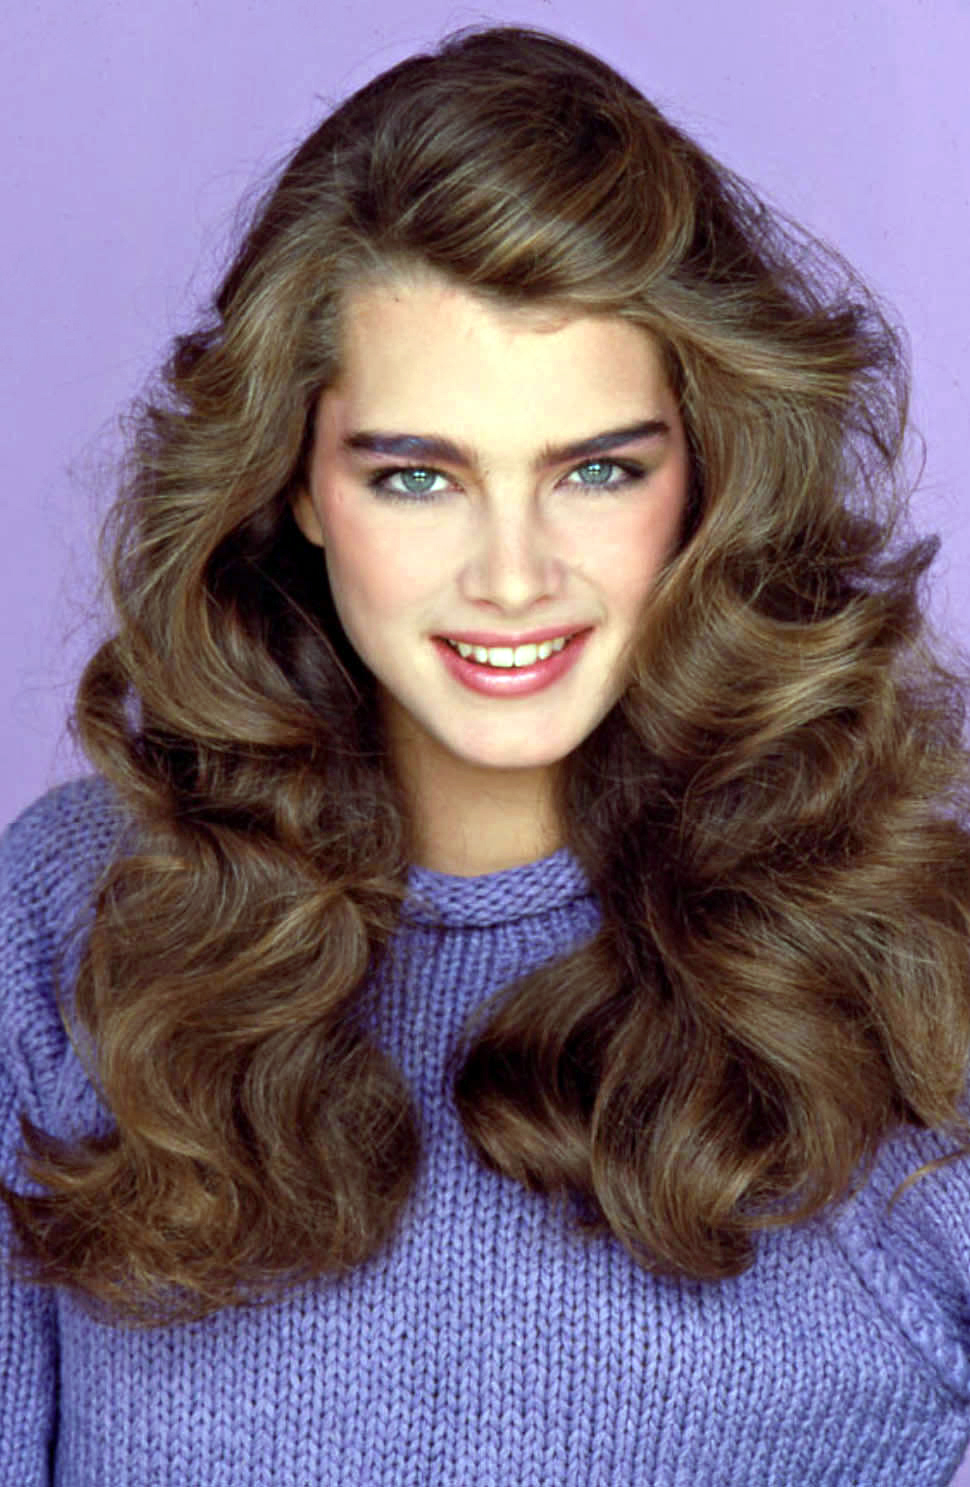 Brooke Shields - Page 24 - Actresses - Bellazon